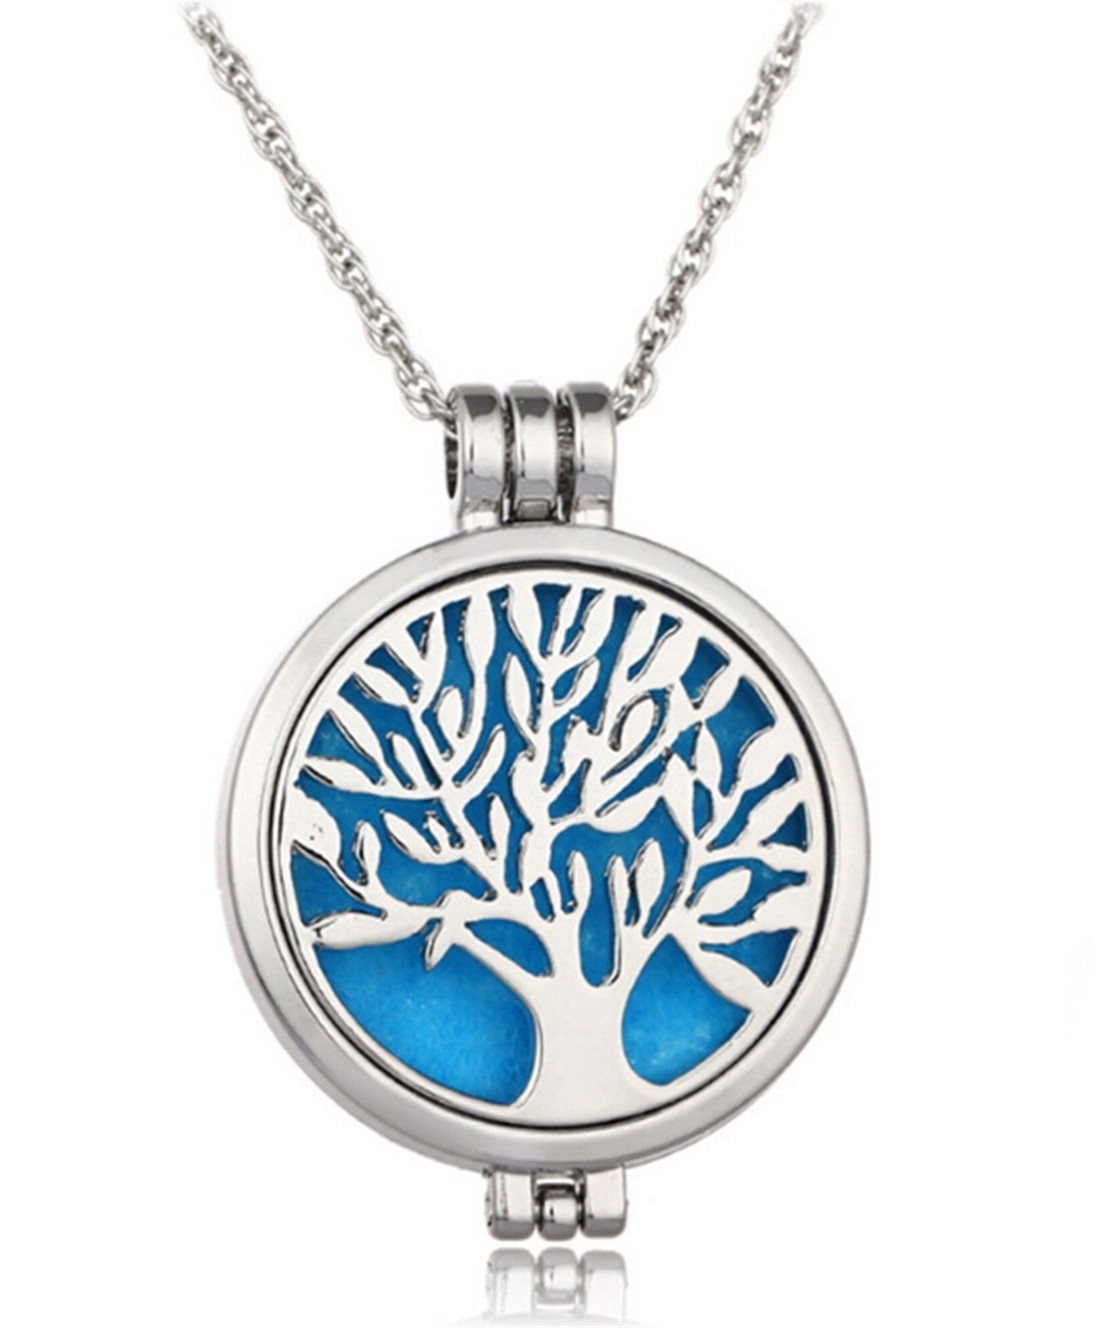 VWH Stainless Steel Aromatherapy Perfume Essential Oil Fragrance Diffuser Necklace Locket Pendant, Tree of Life